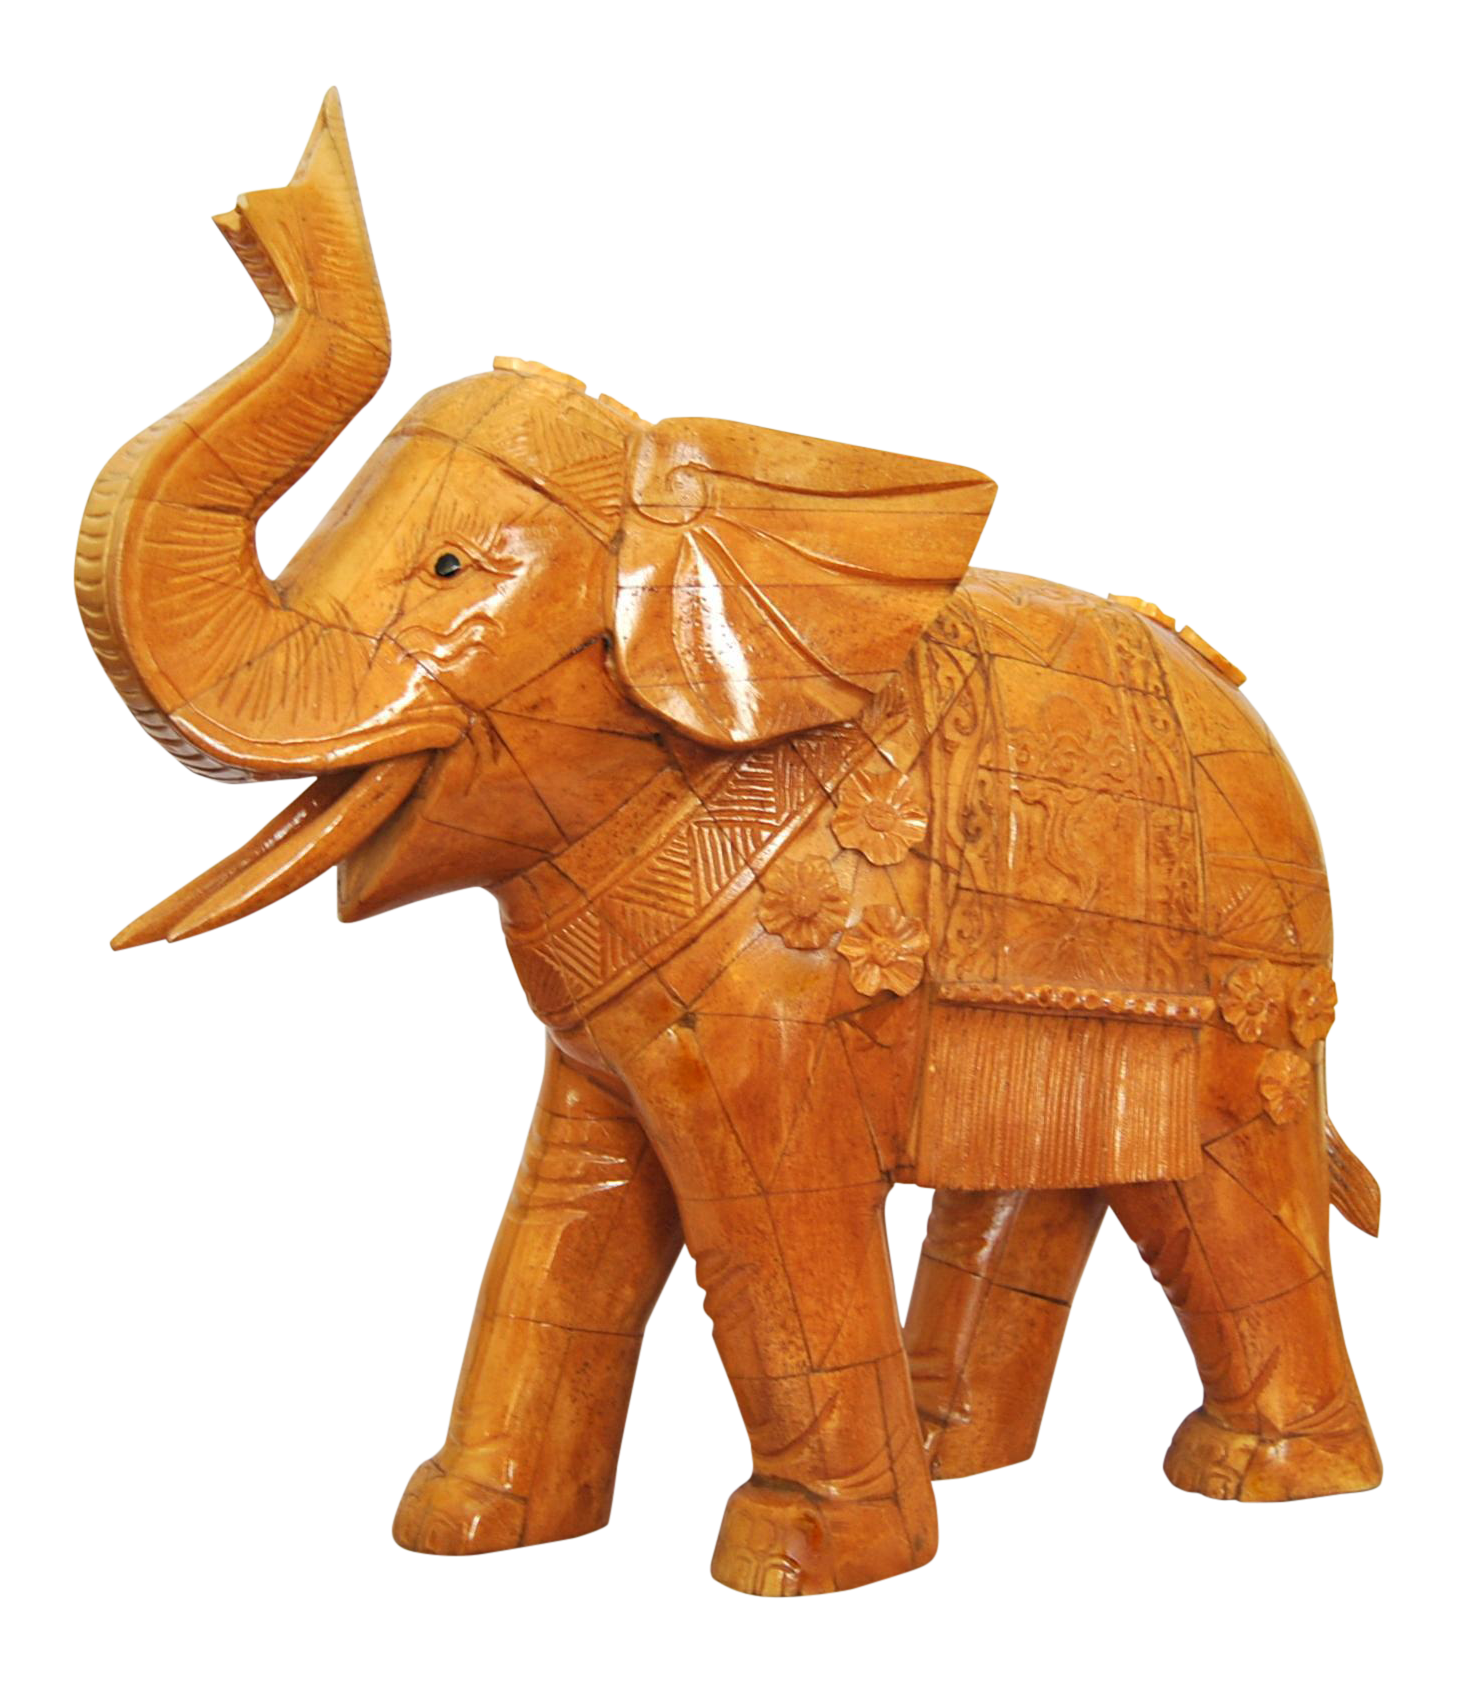 Chinese Ox Bone Carved Elephant Trunk Up Animal Sculpture Chairish